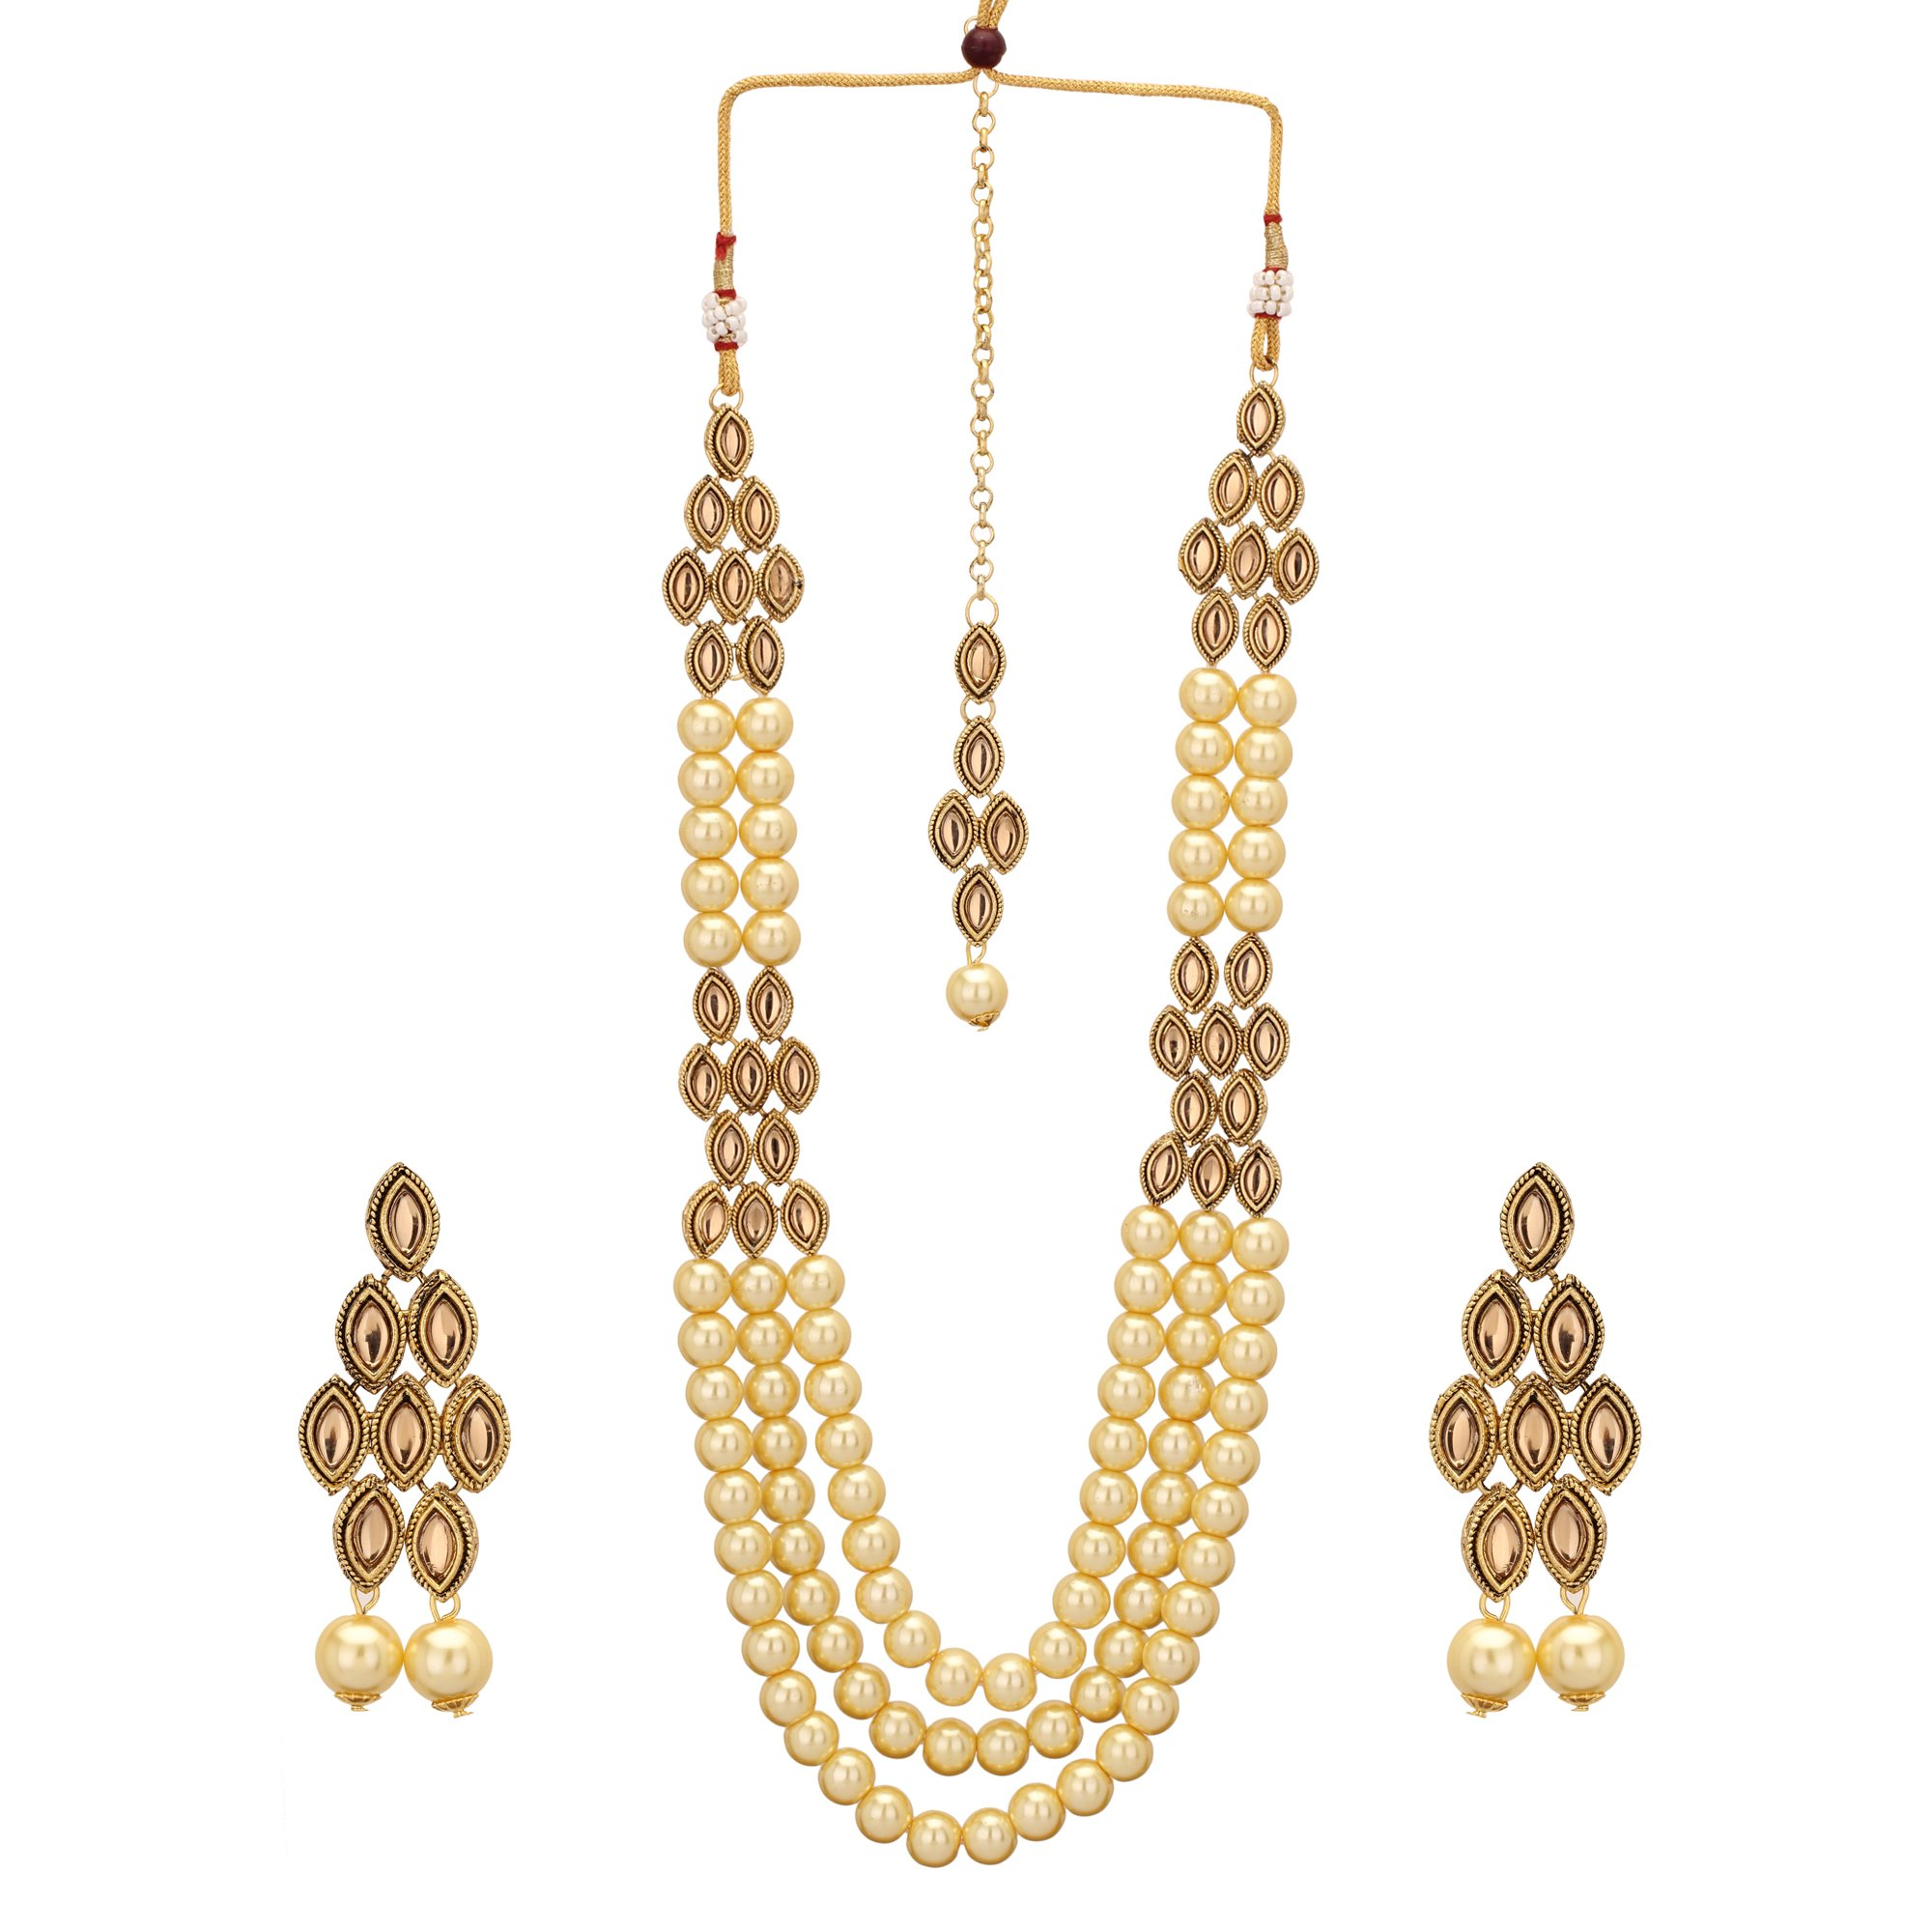 Jwellmart Indian CZ Traditional Bridal Wedding Party Wear Kundan Necklace Set for Women and Girls (Brown)